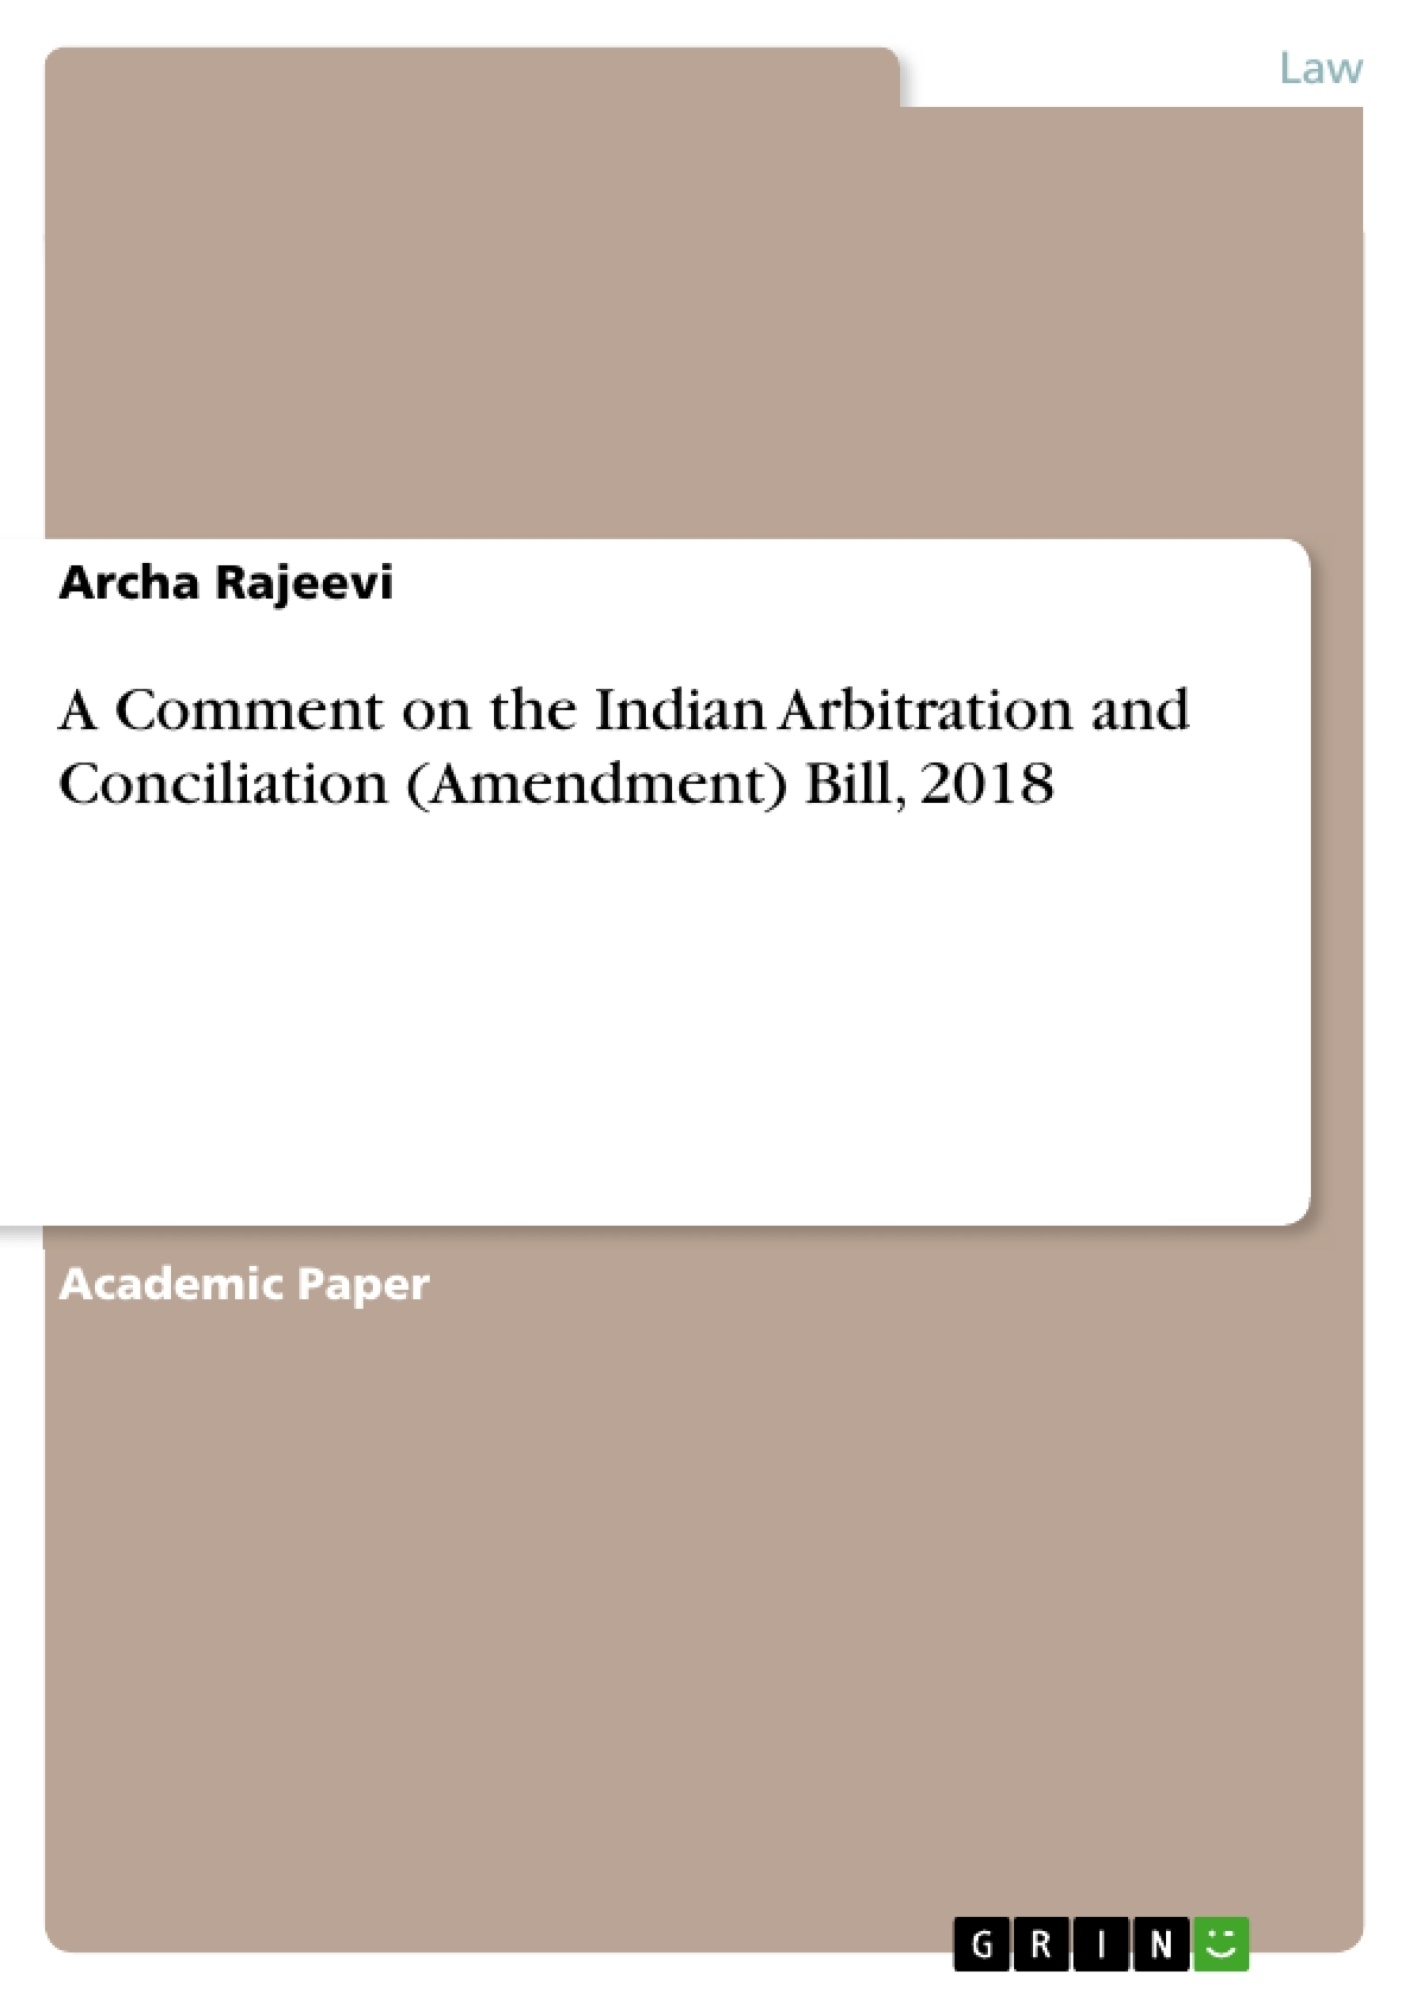 Title: A Comment on the Indian Arbitration and Conciliation (Amendment) Bill, 2018